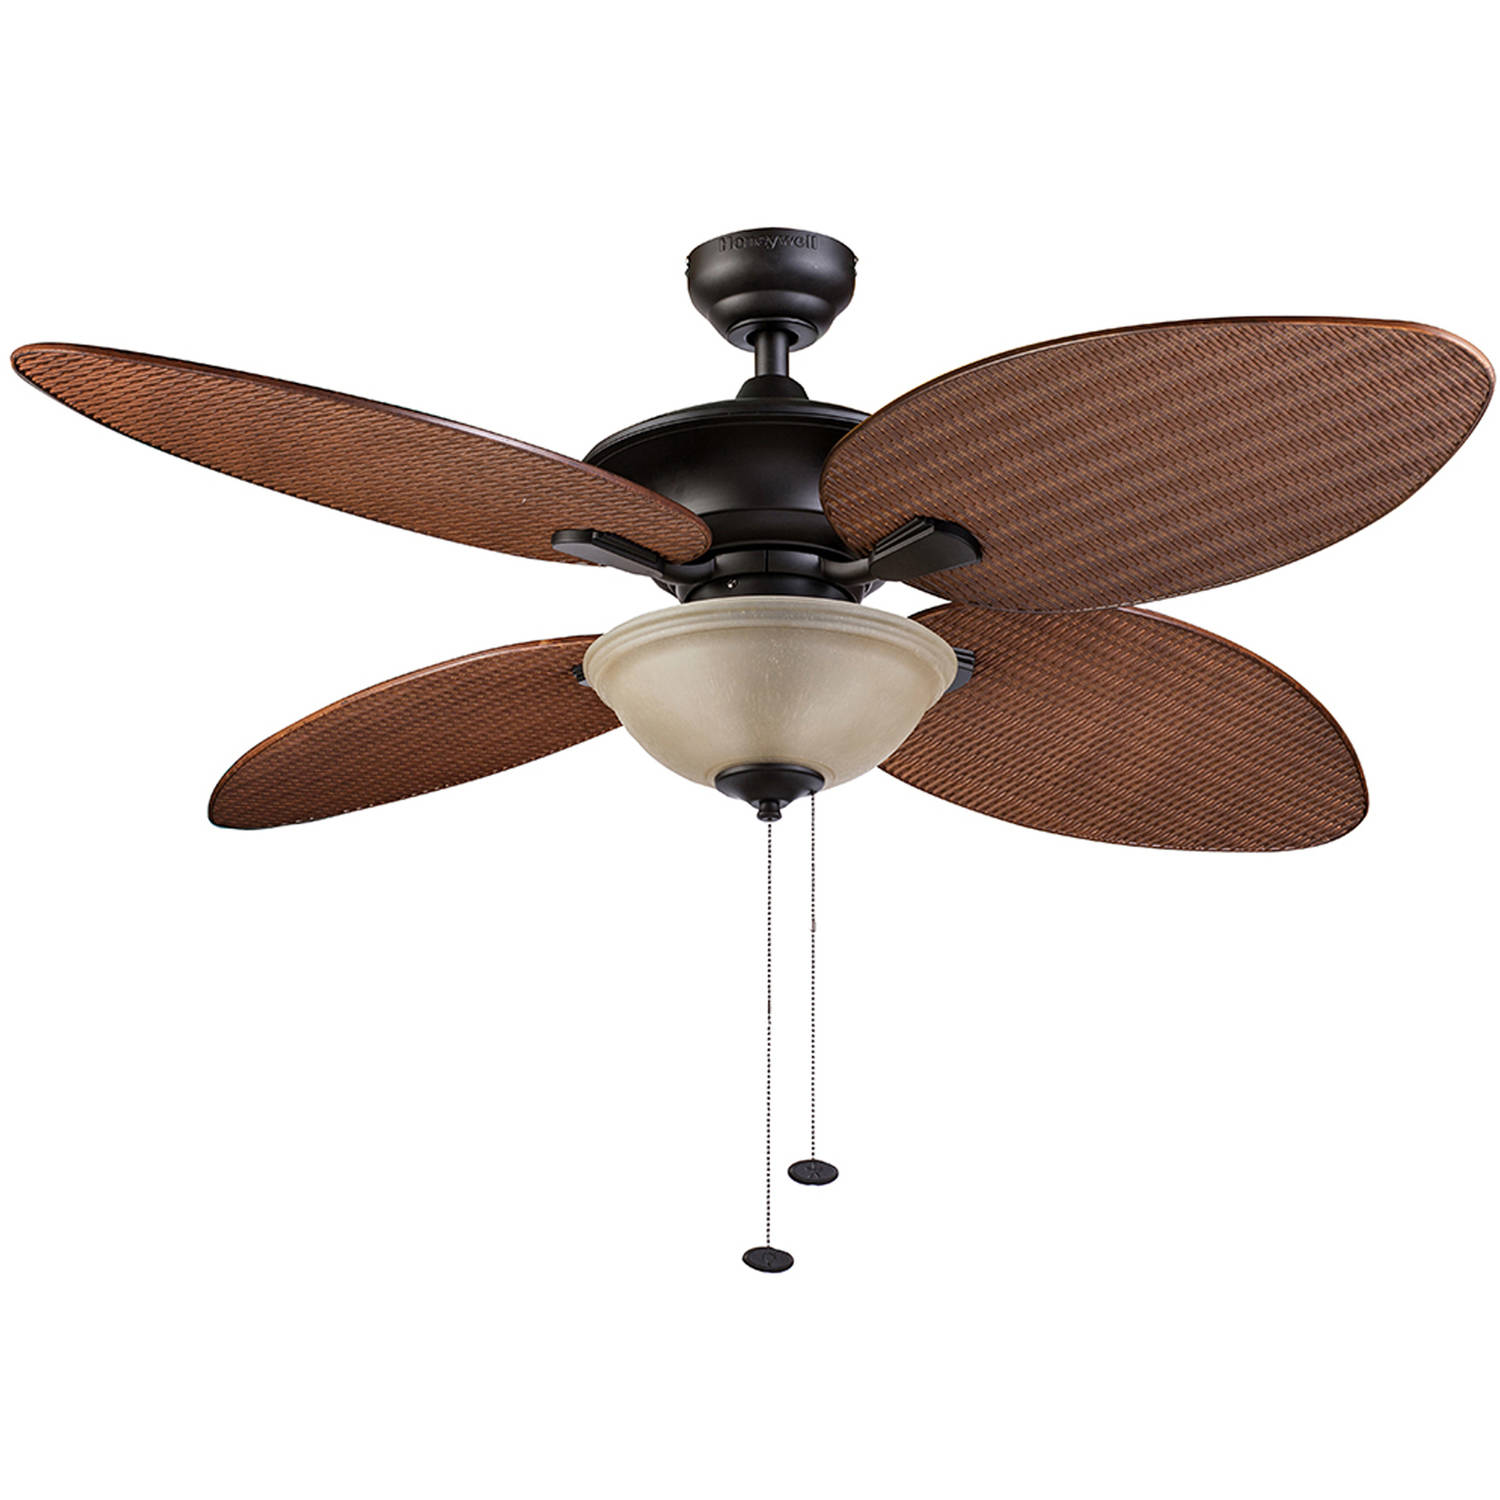 "52"" Honeywell Sunset Key Tropical Ceiling Fan, Bronze"